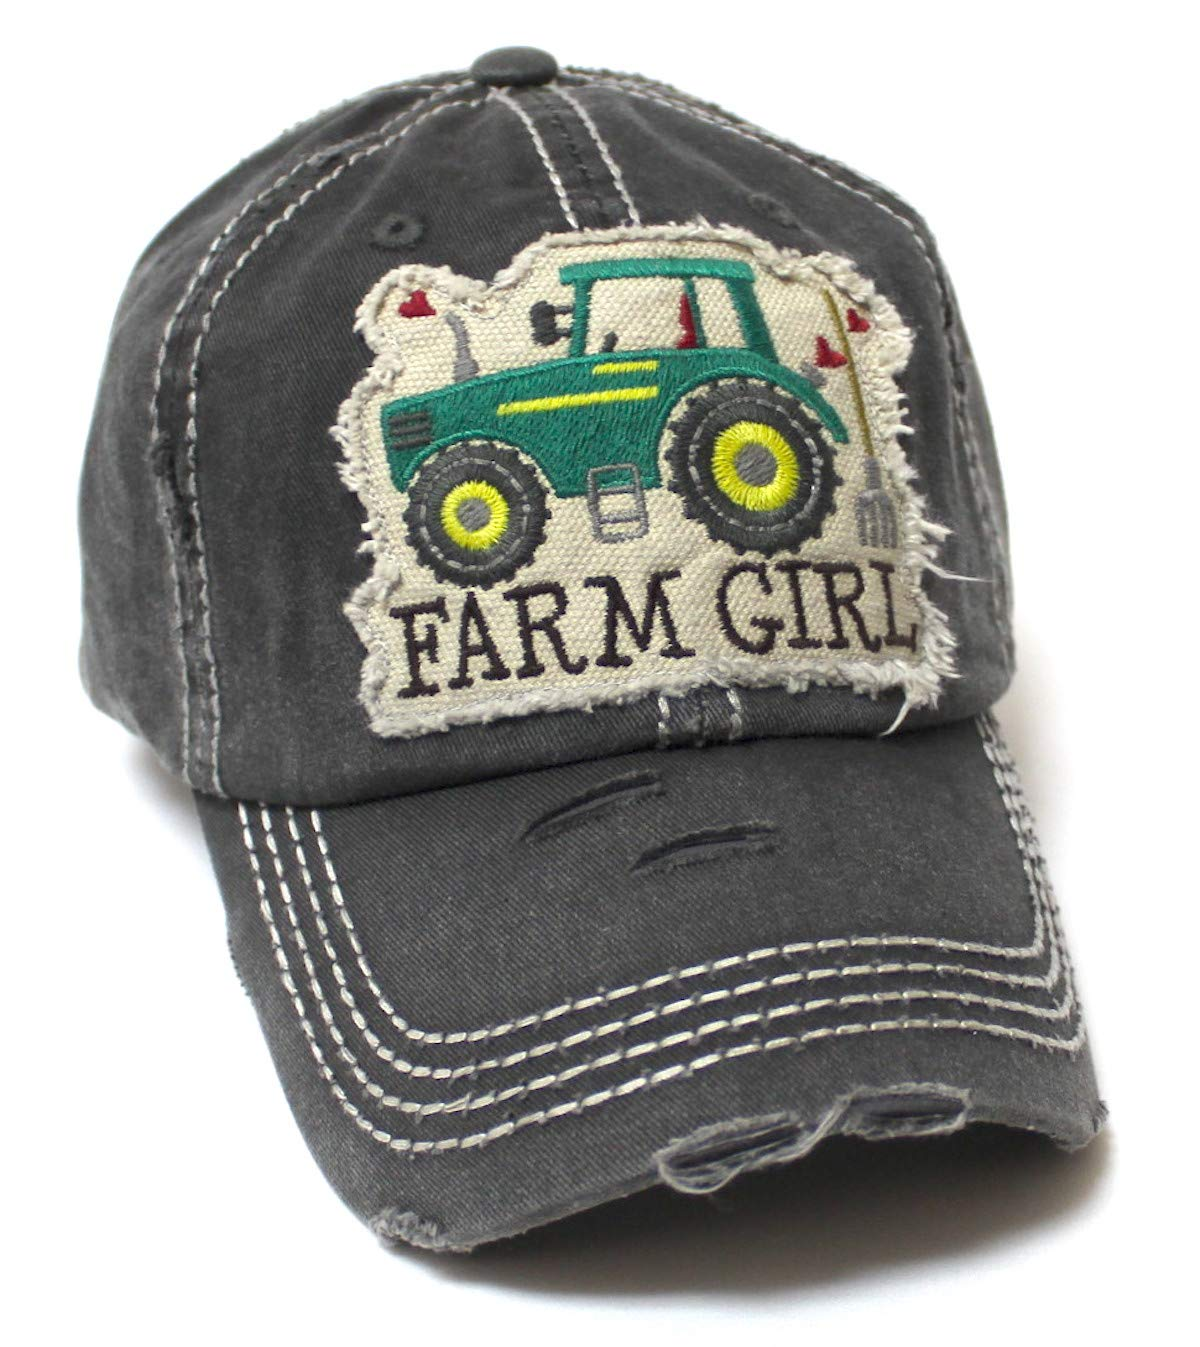 Women's Distressed Hat Farm Girl Country Love Patch Embroidery Monogram Ballcap, Vintage Black - Caps 'N Vintage